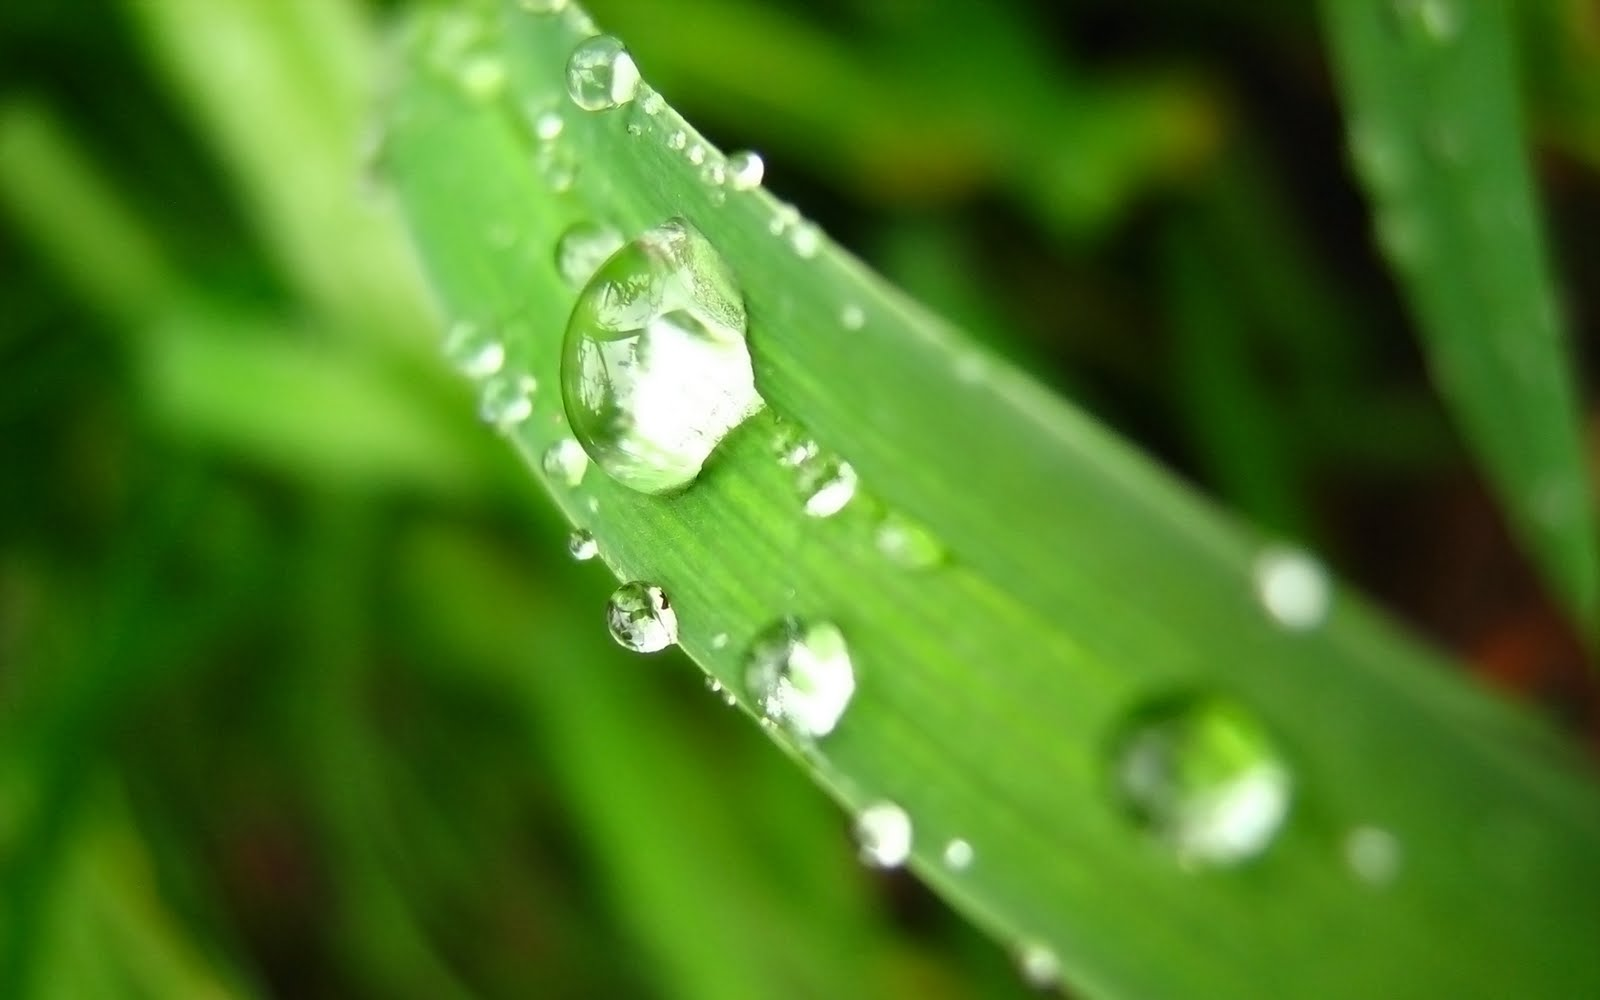 3d Wallpapers For Nokia E63 Cool Images Rain Wallpapers